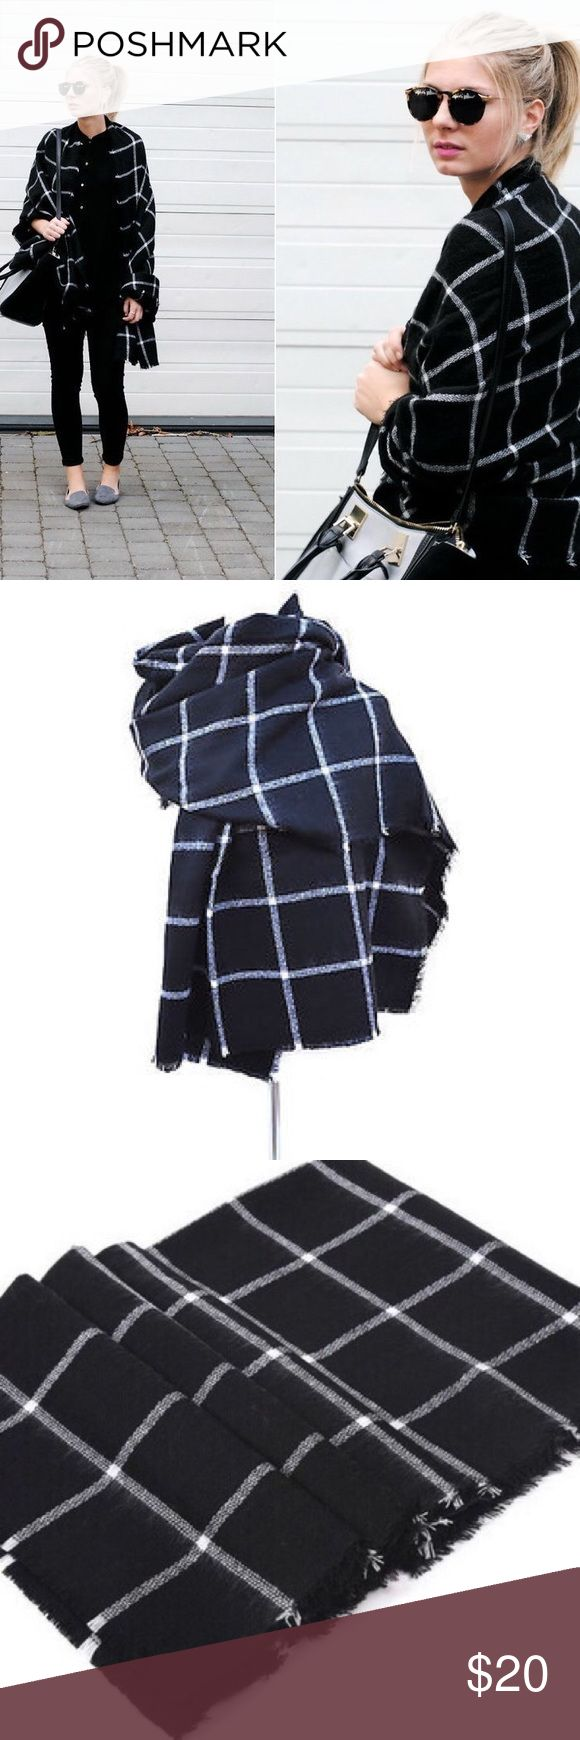 "Tartan black and white plaid blanket scarf NWOT. A staple for fall and winter! Looks just like Zara. Size is 78"" x 40"" Accessories Scarves & Wraps"